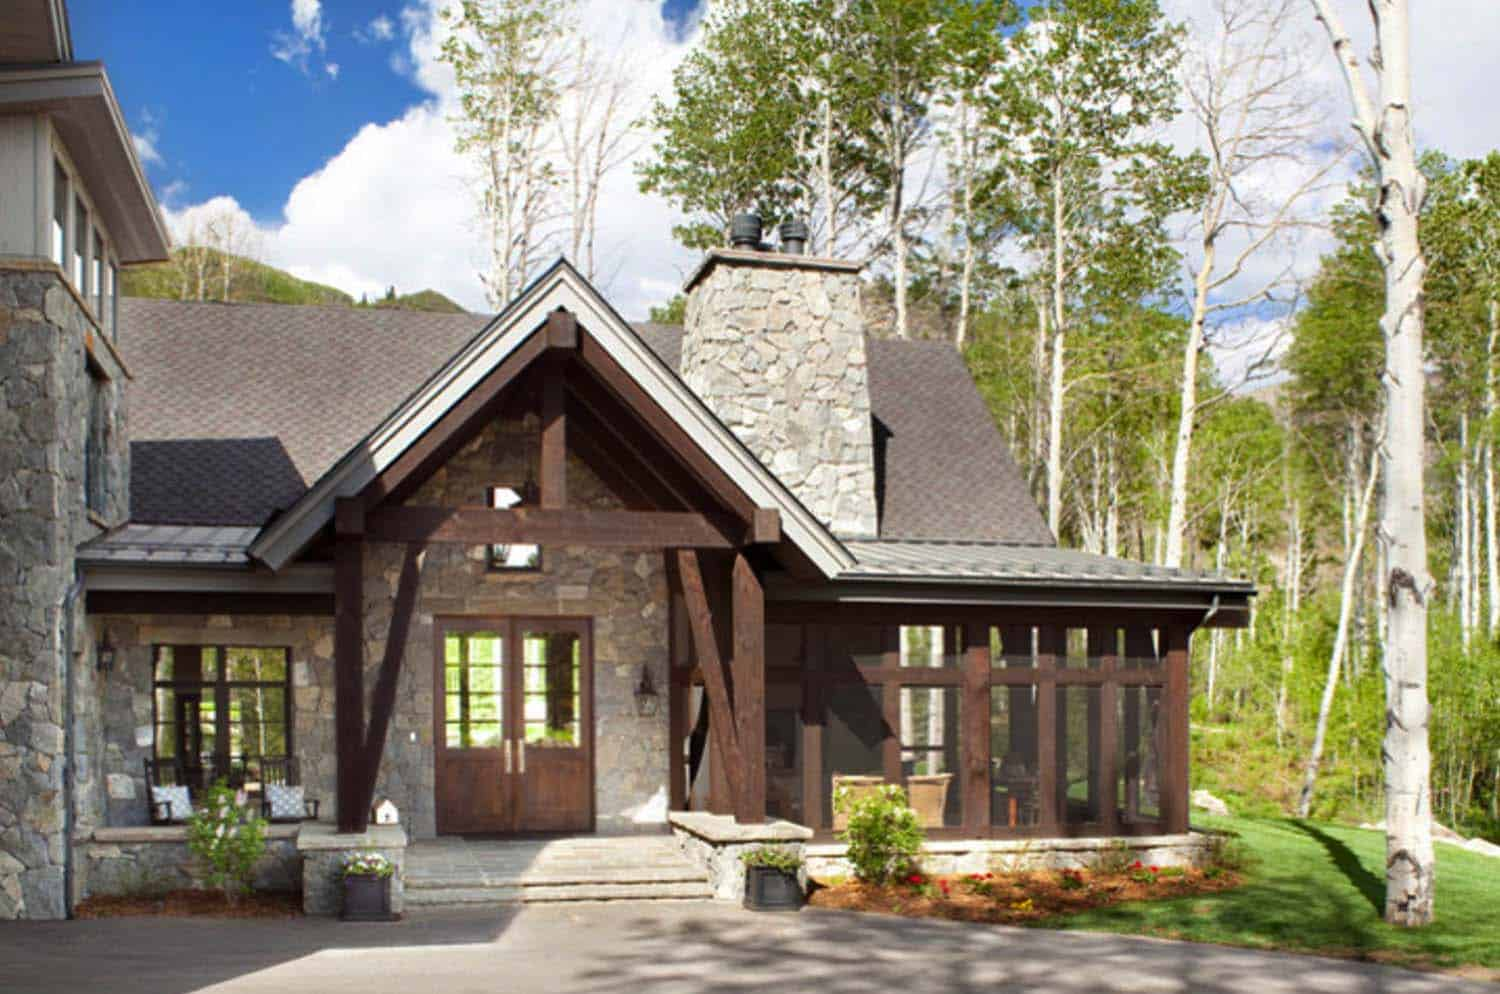 Contemporary Mountain Home-Vertical Arts Architecture-01-1 Kindesign